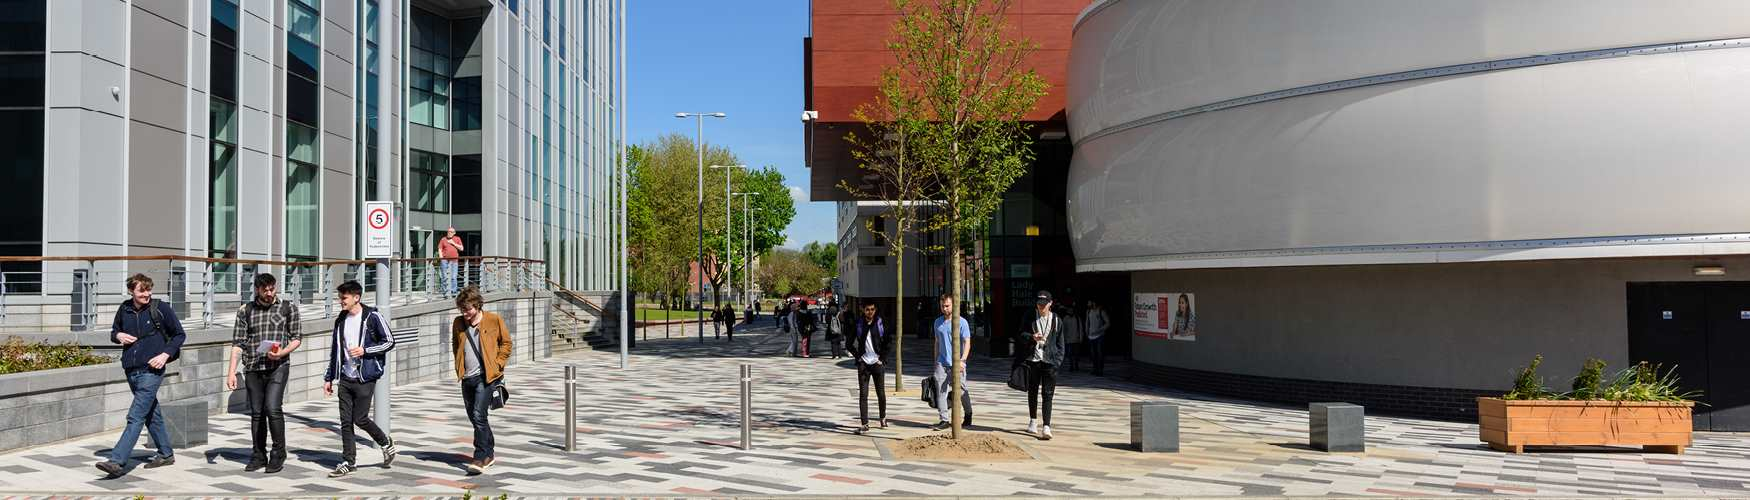 Over 100,000 students study at Greater Manchester universities